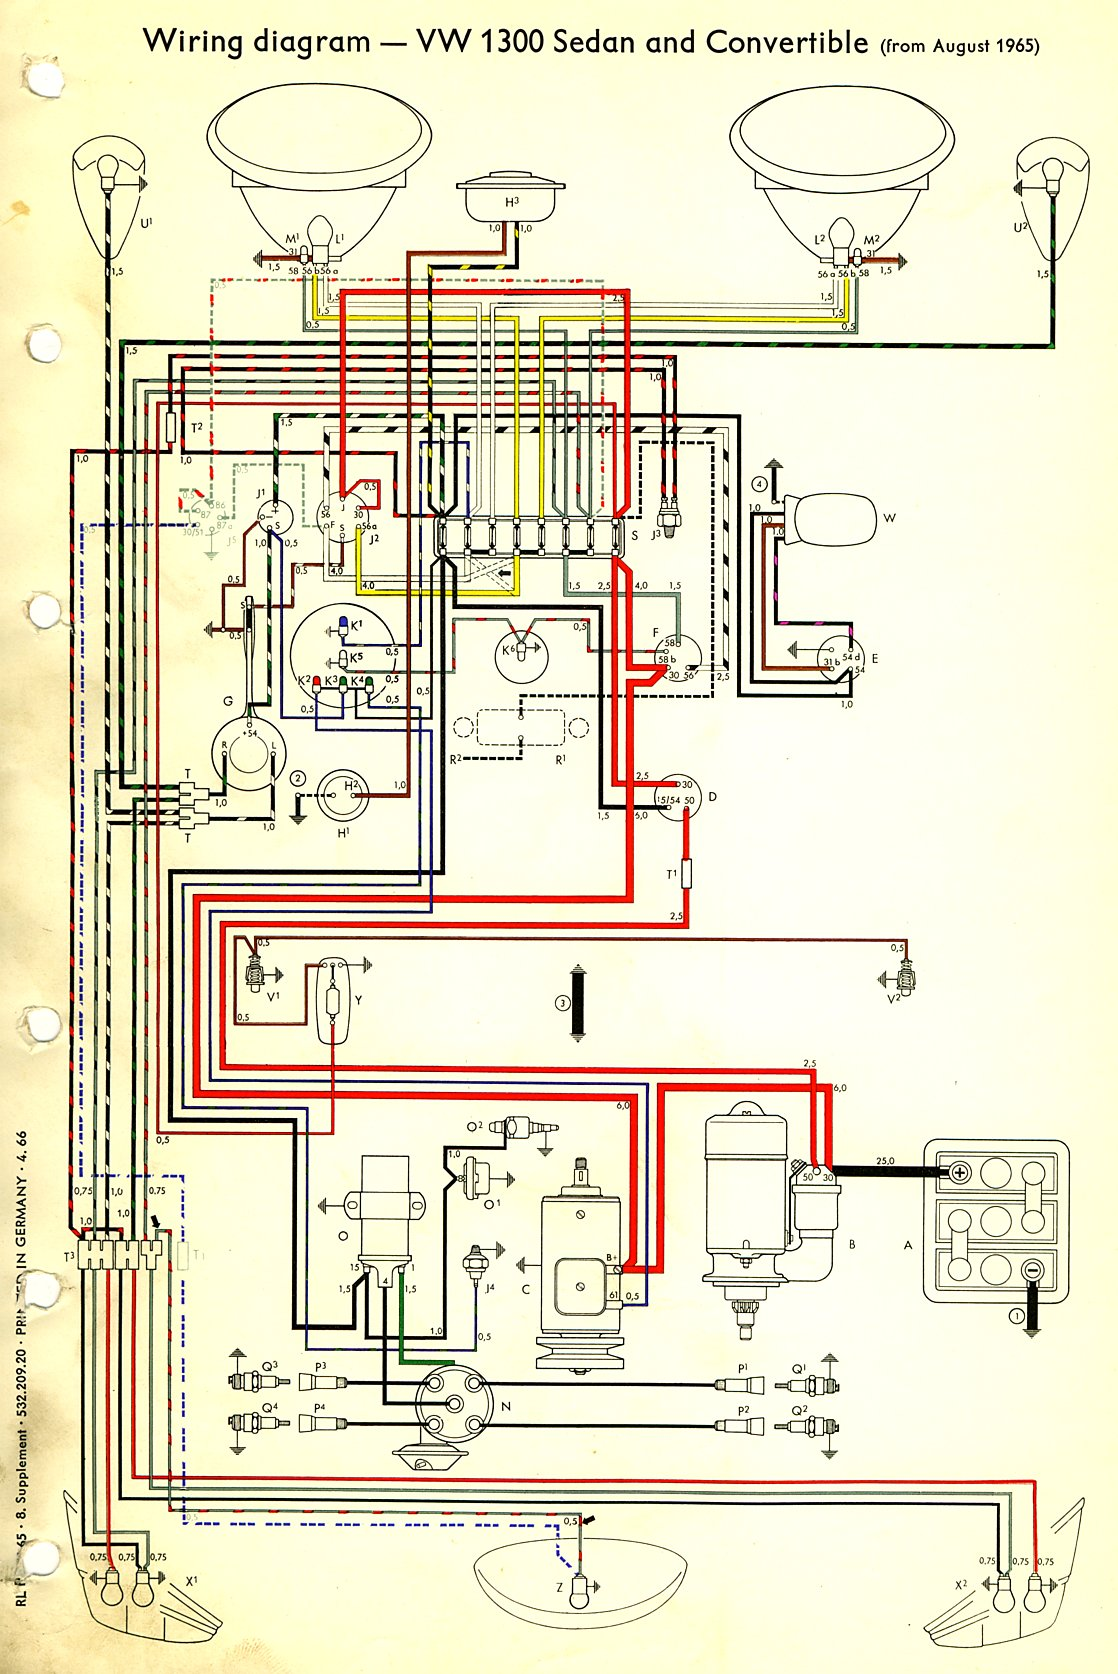 bug_66 1966 beetle wiring diagram thegoldenbug com vw wiring diagrams at couponss.co